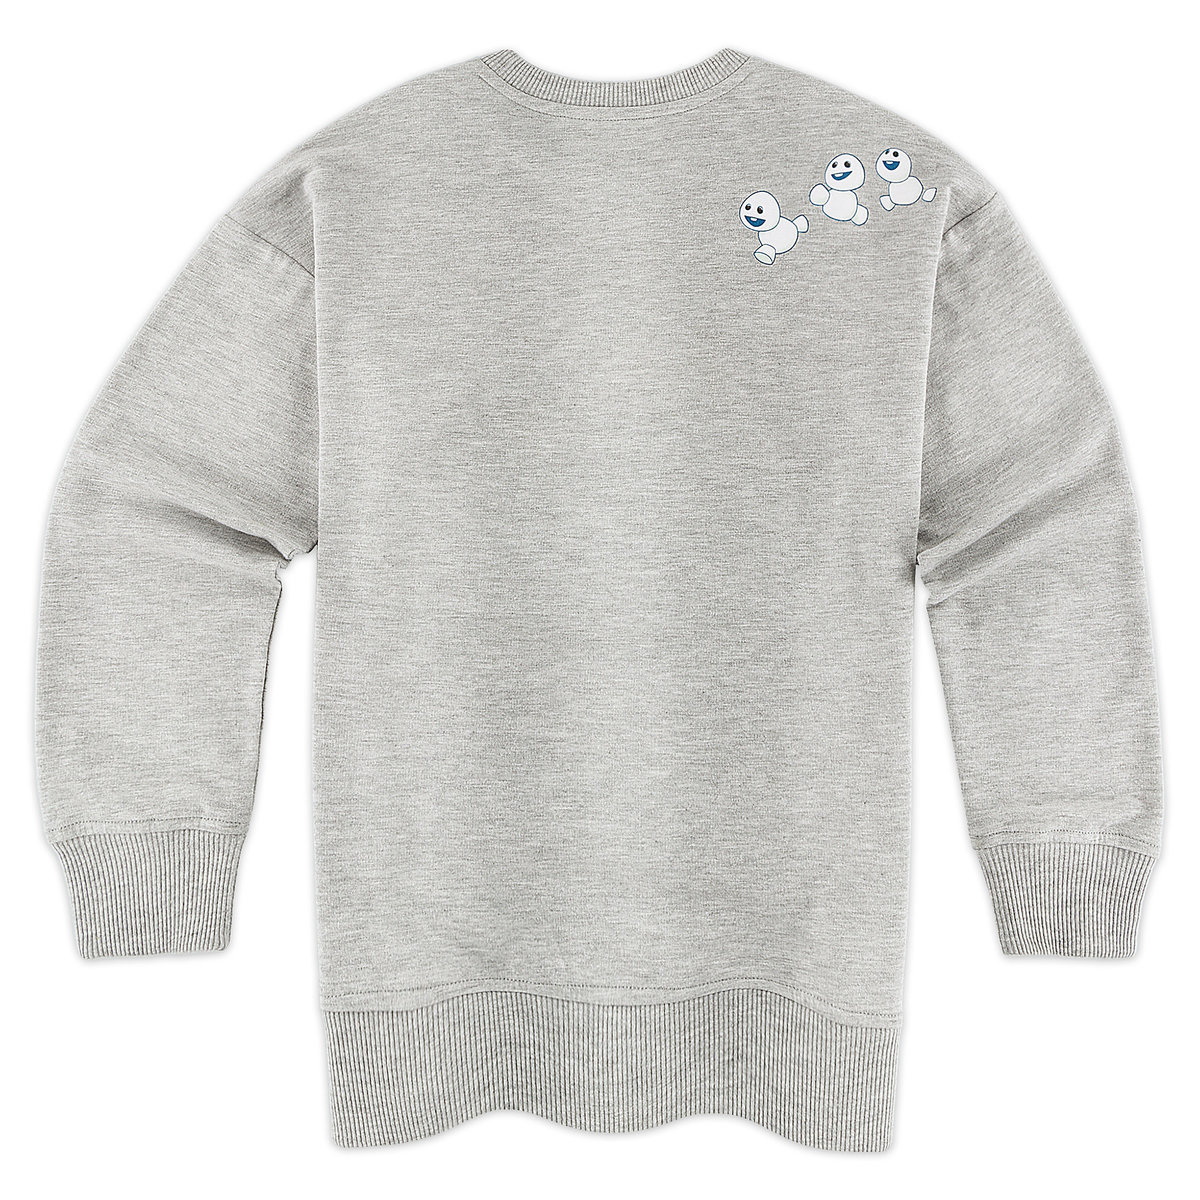 0c0392c2 Product Image of Olaf Sweatshirt for Boys - Frozen # 1